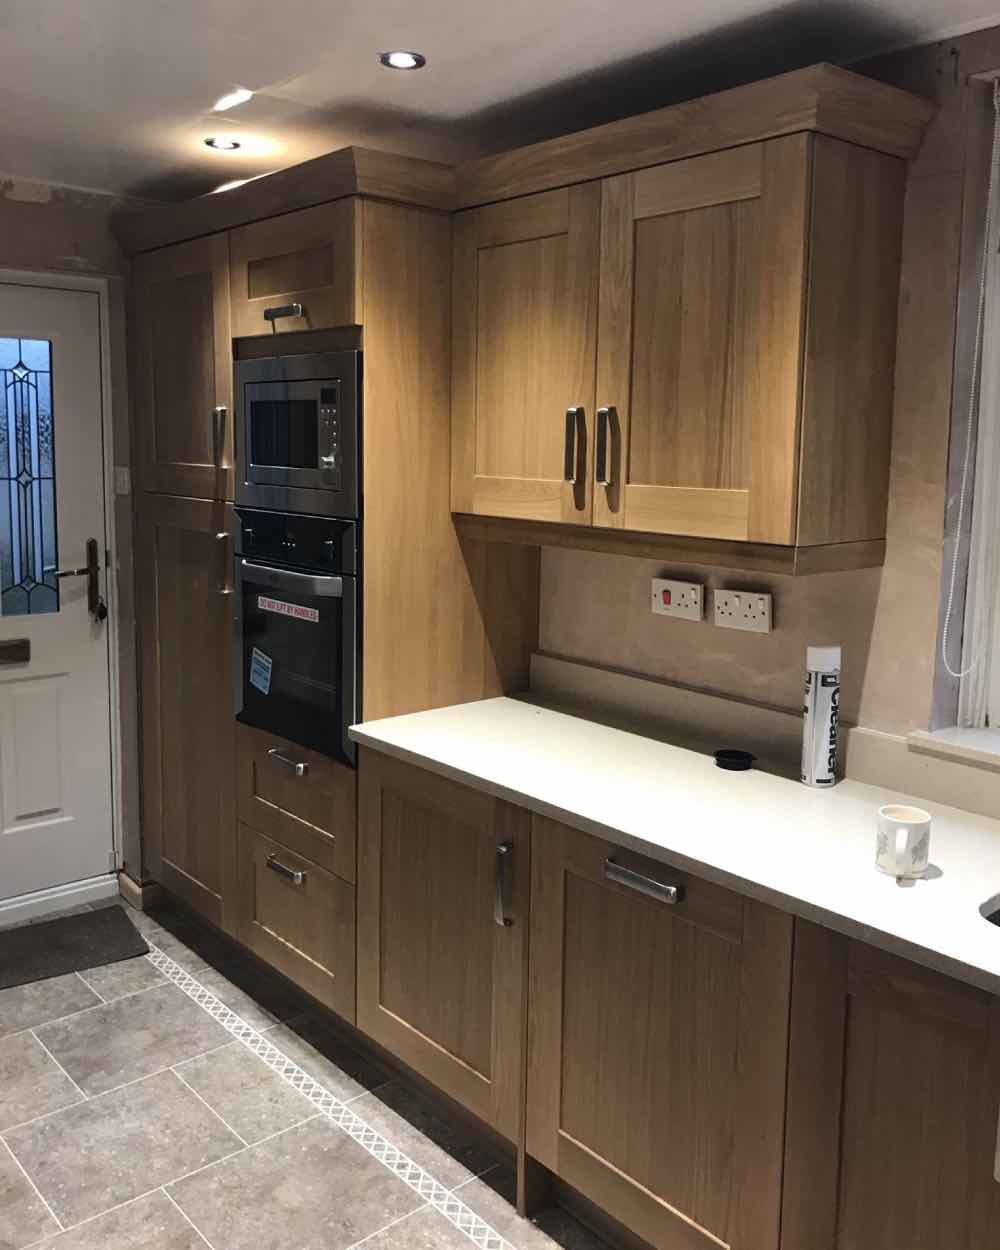 Kitchen Renovation Project in Royton from Wrights Interiors